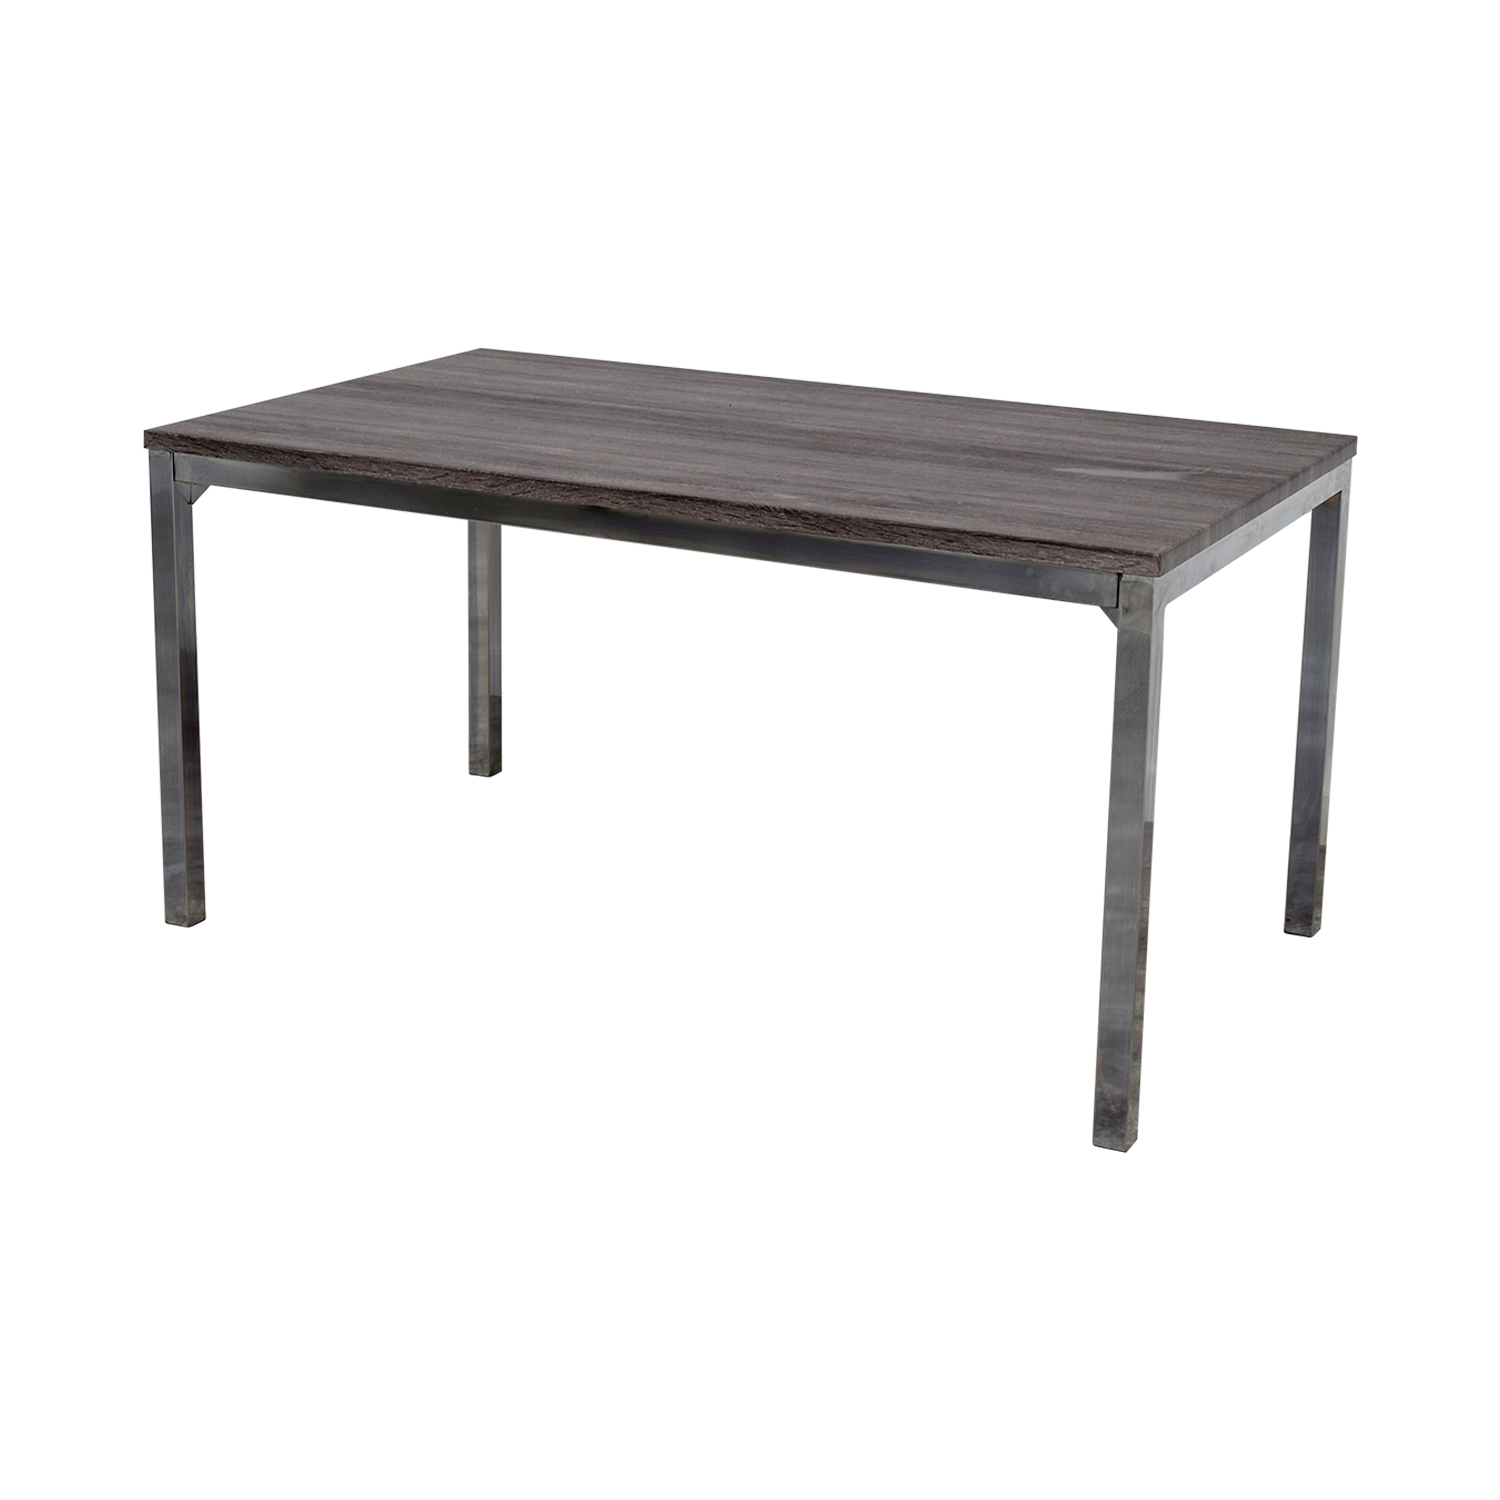 Wildon Home Wildon Home Rustic Wood Top and Chrome Dining Table nj